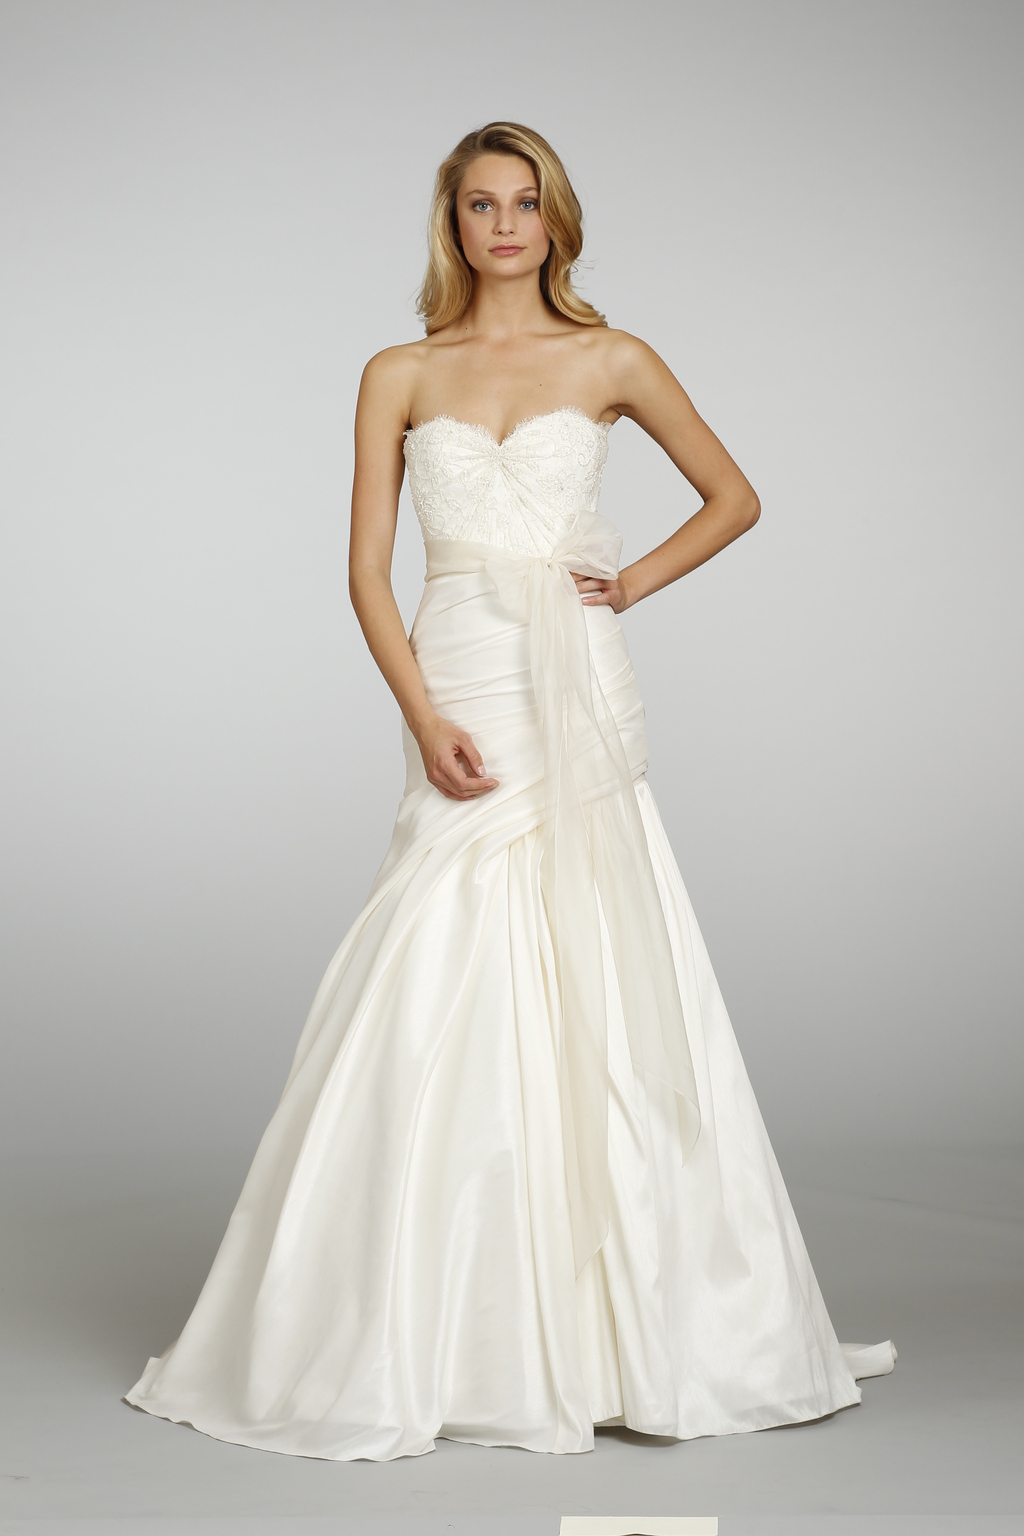 spring wedding dress hayley paige bridal gowns hayley paige wedding dress Spring Wedding Dress Hayley Paige bridal gowns